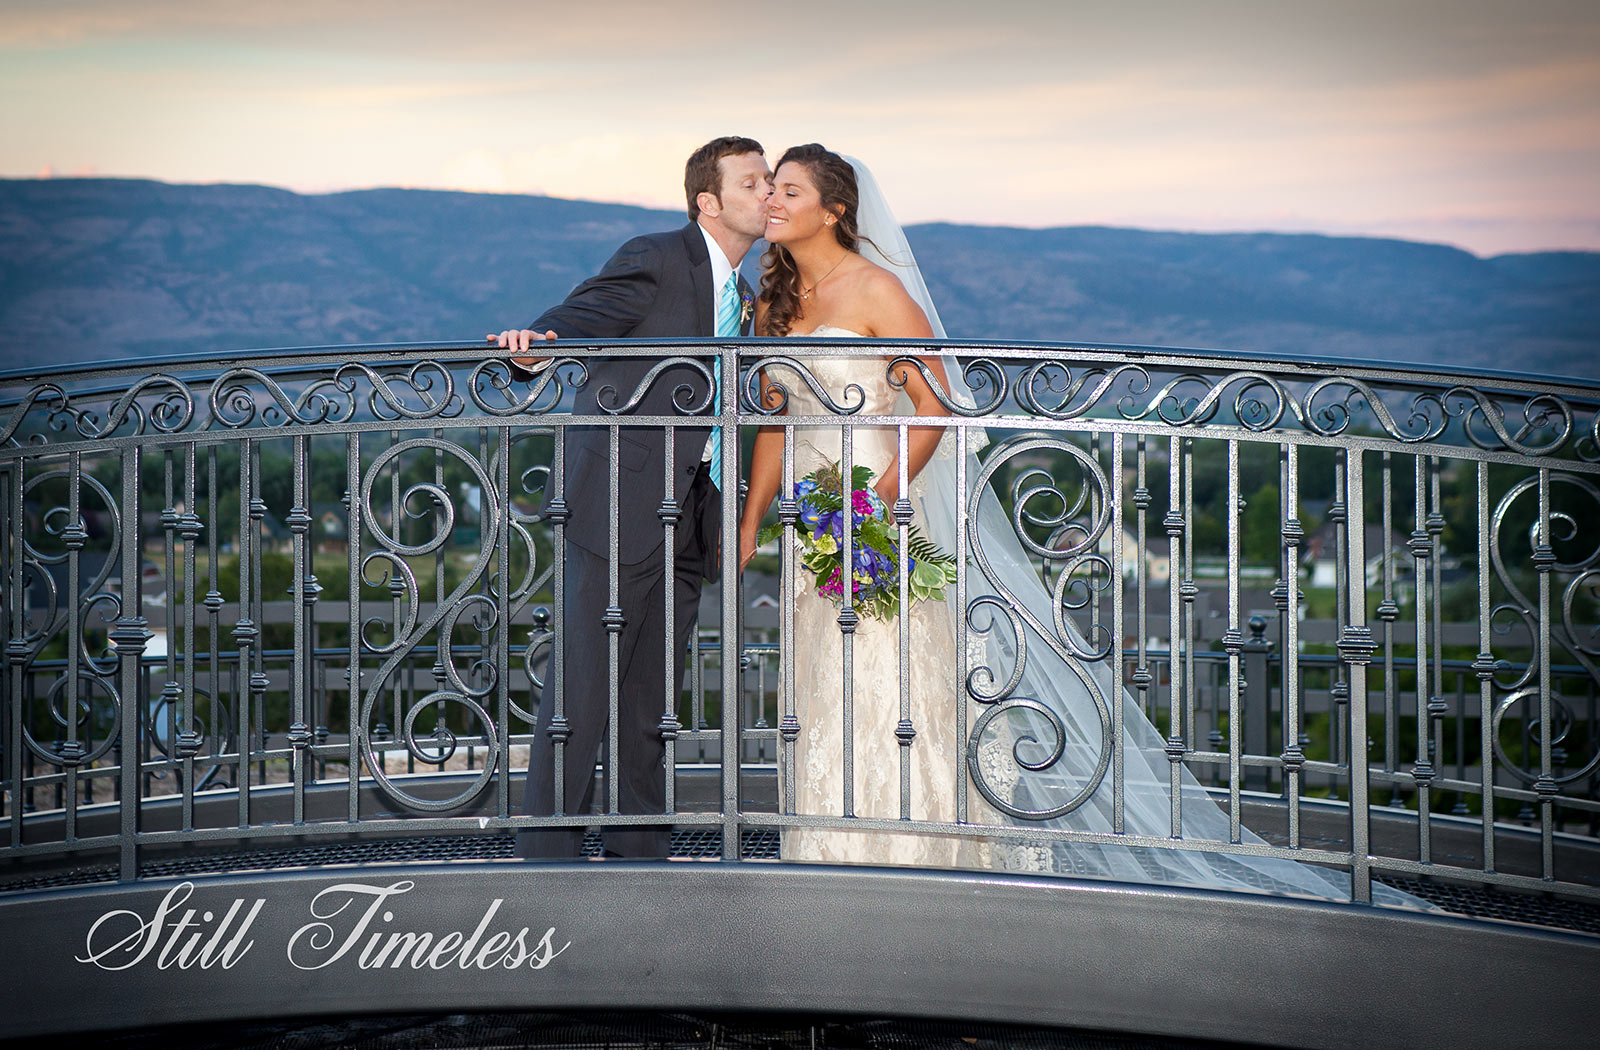 Groom kissing the bride on the cheek on the bridge above the crate with the Heber valley in the background